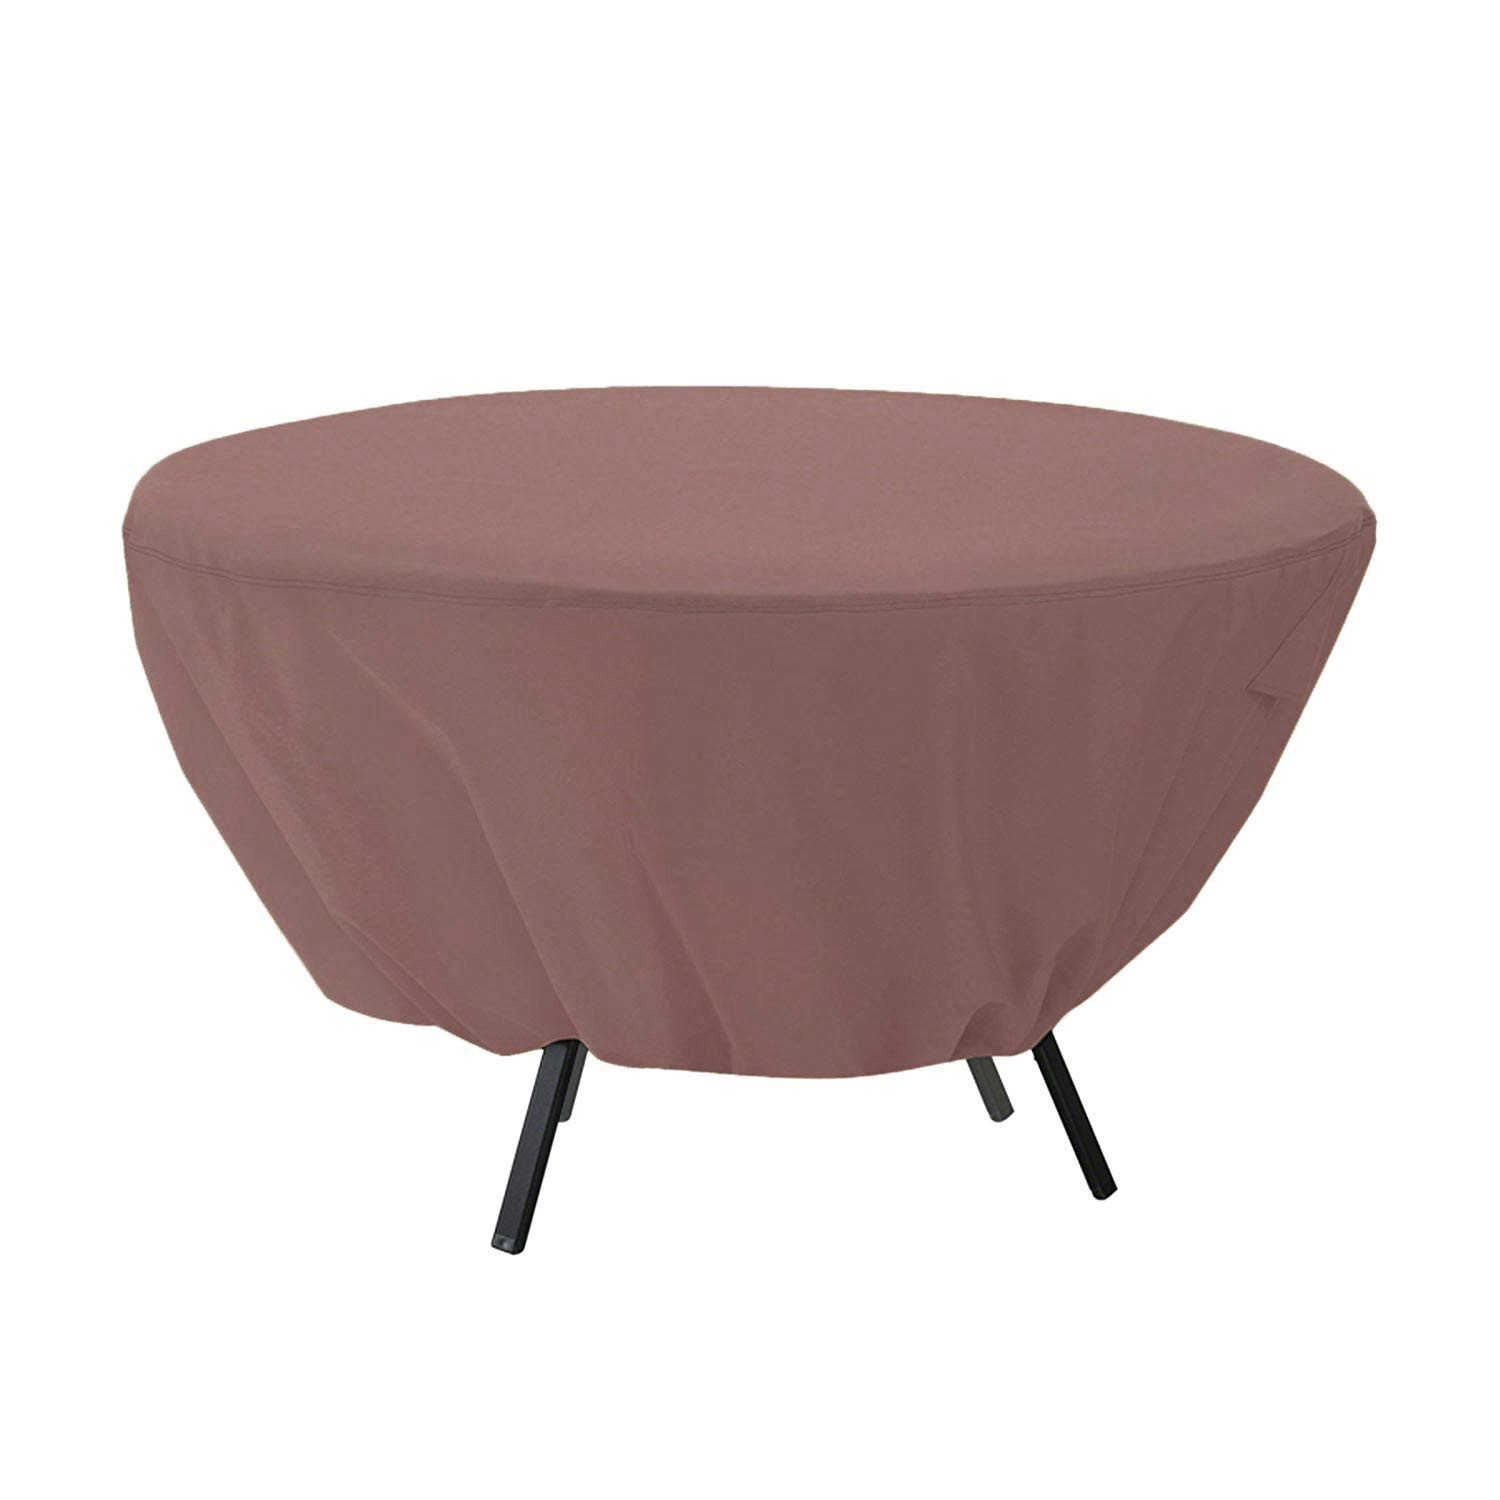 Wodahan Patio Round Table Cover - Tough Canvas Waterproof Anti-Freeze Sunscreen dustproofOutdoor Dining Table Chair Set Cover Size (50×23in)